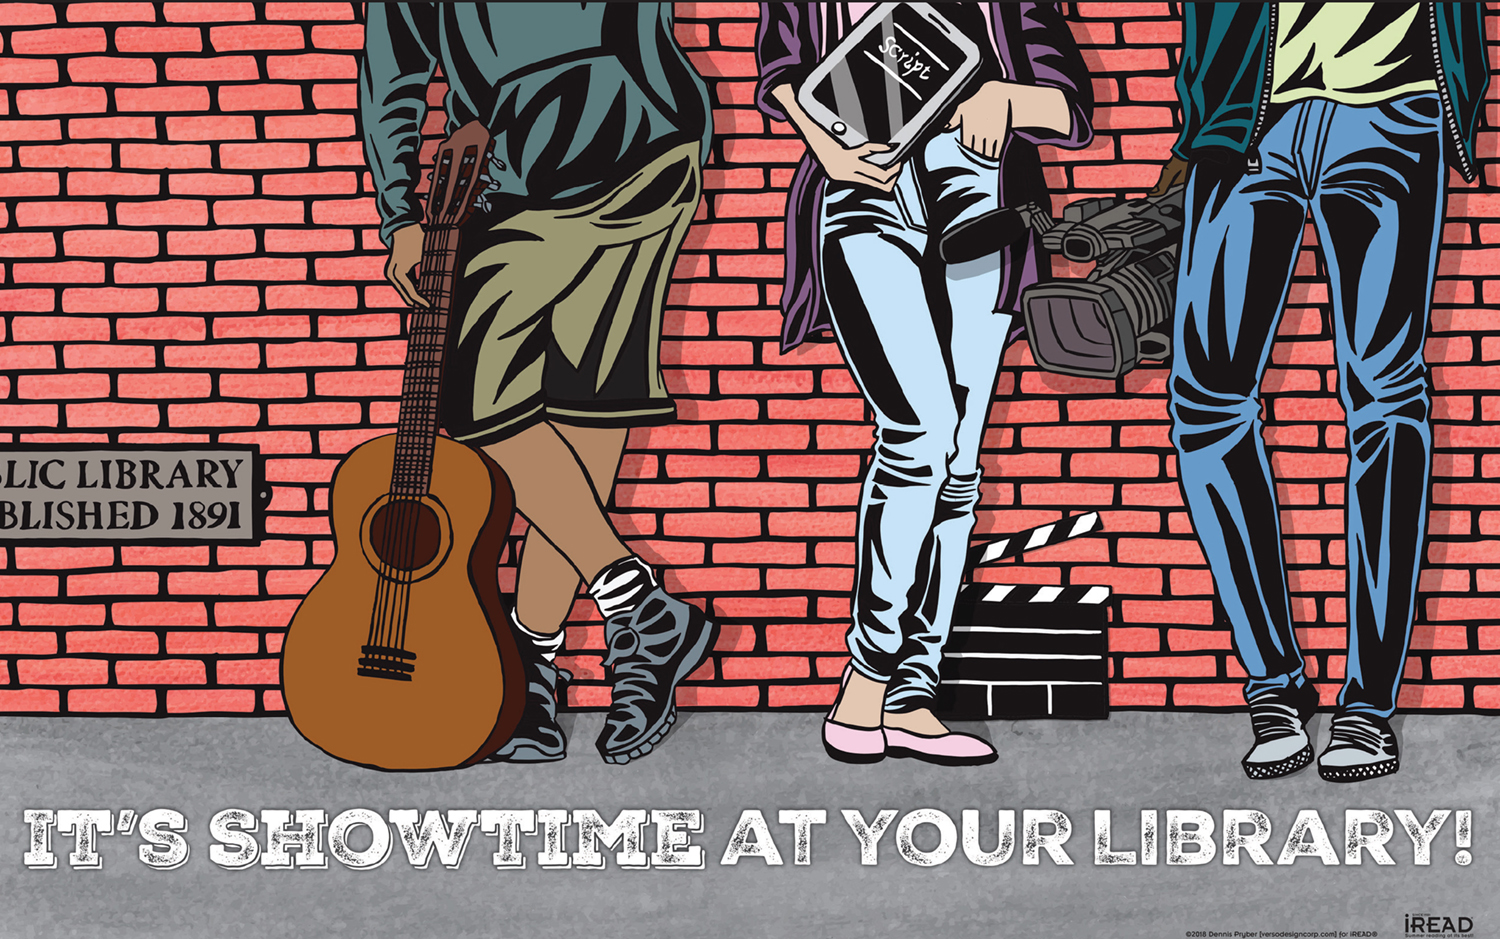 Showtime at Your Library! iREAD Teen